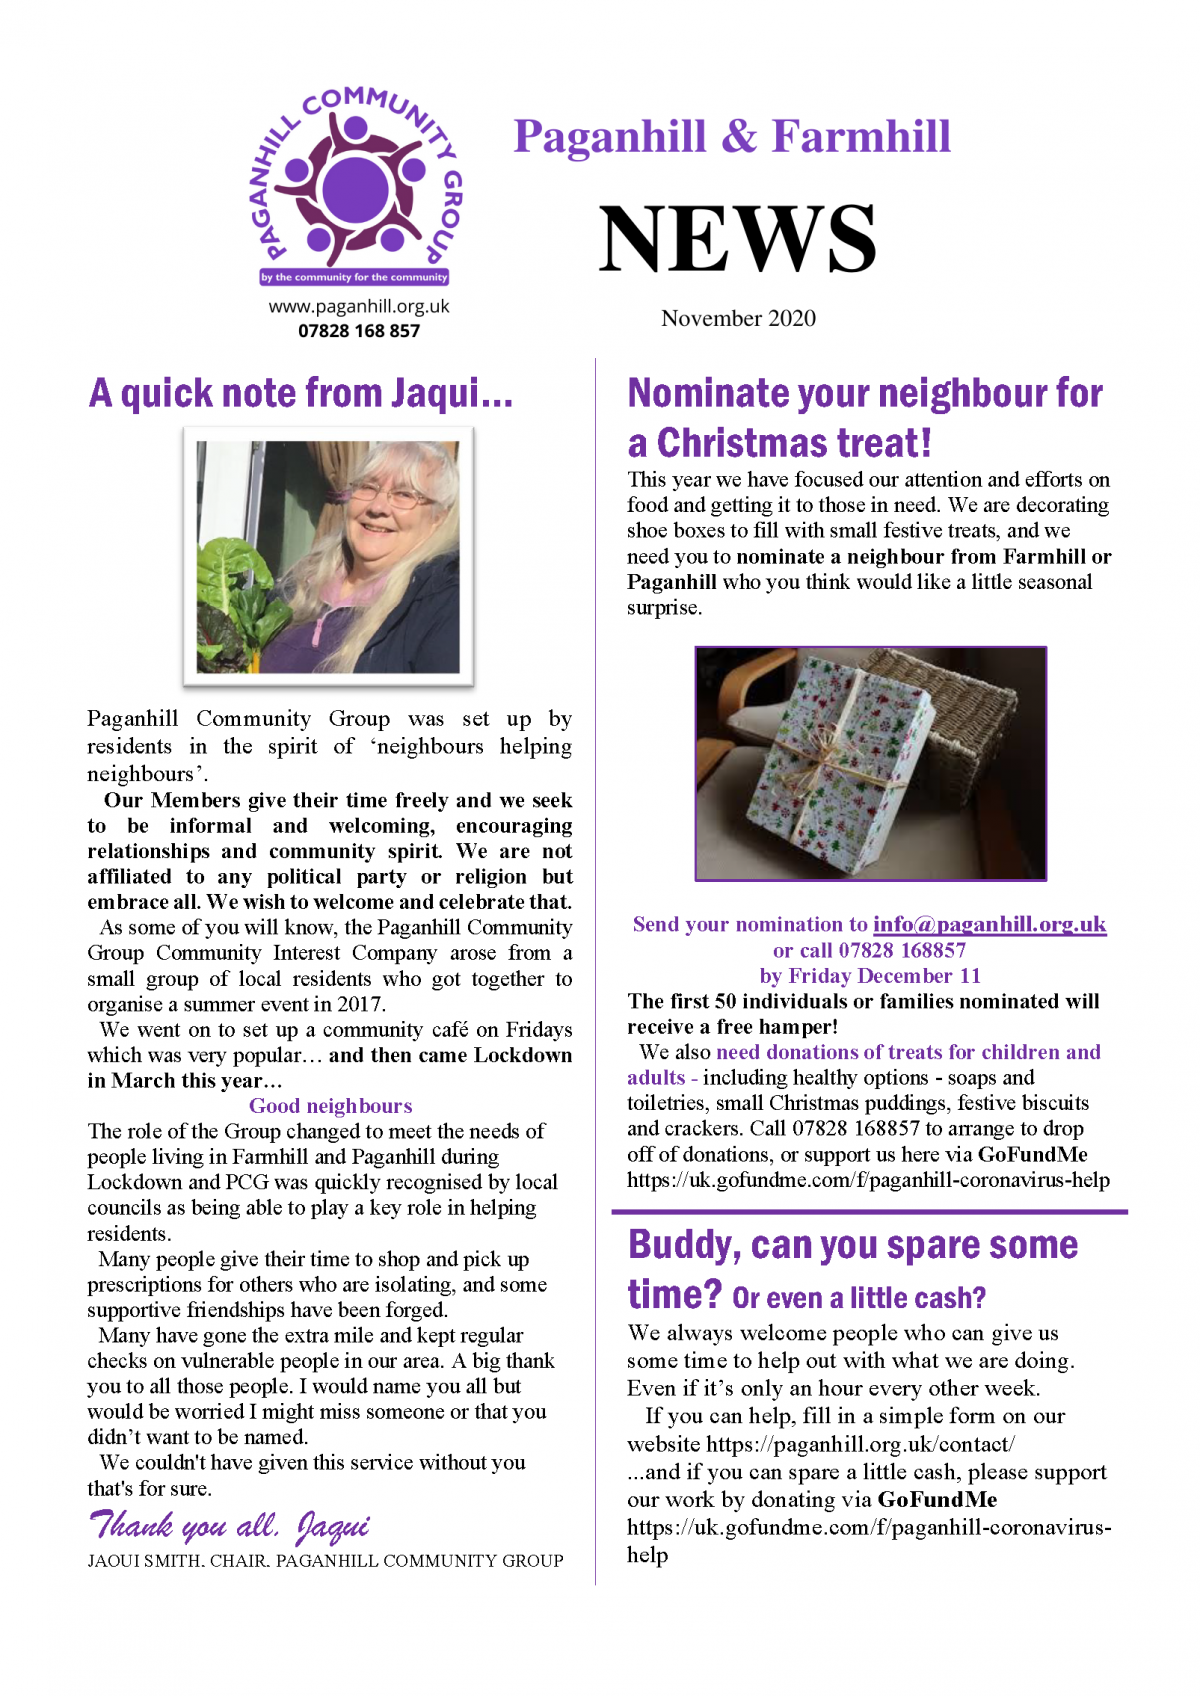 front page of newsletter